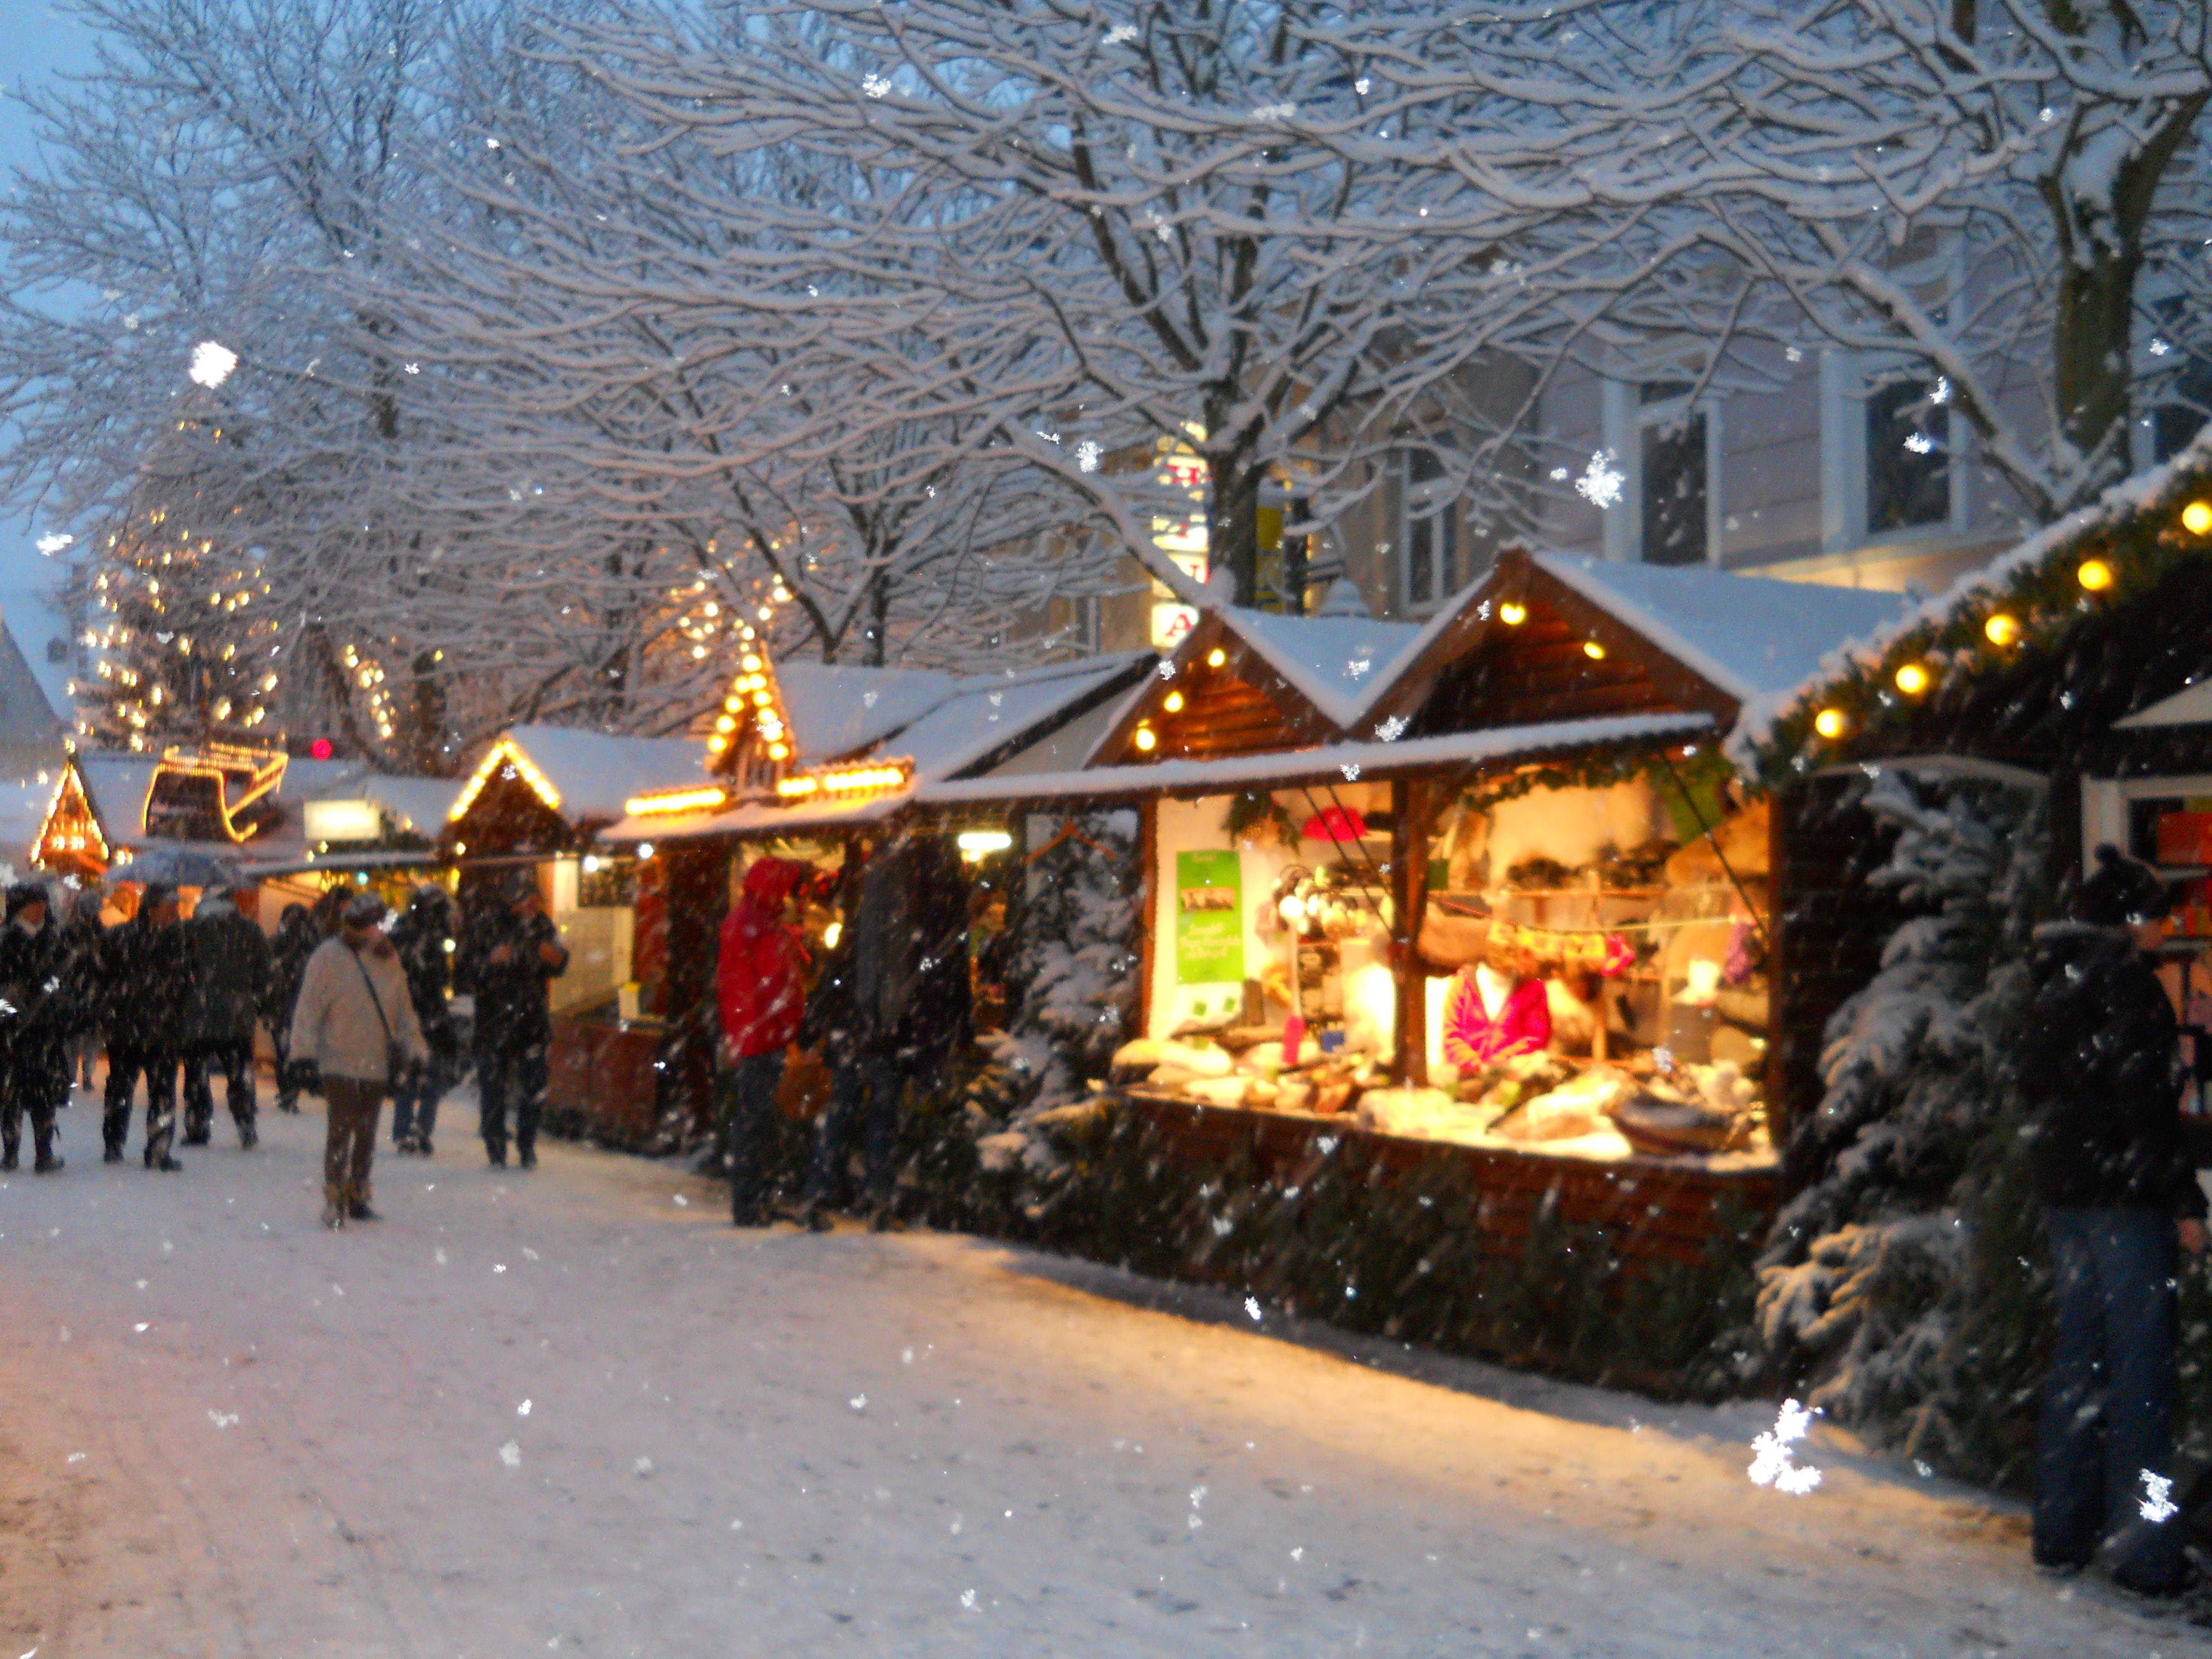 Christmas Market in Bruel, Germany --- Wishing so badly I could go back to germany again